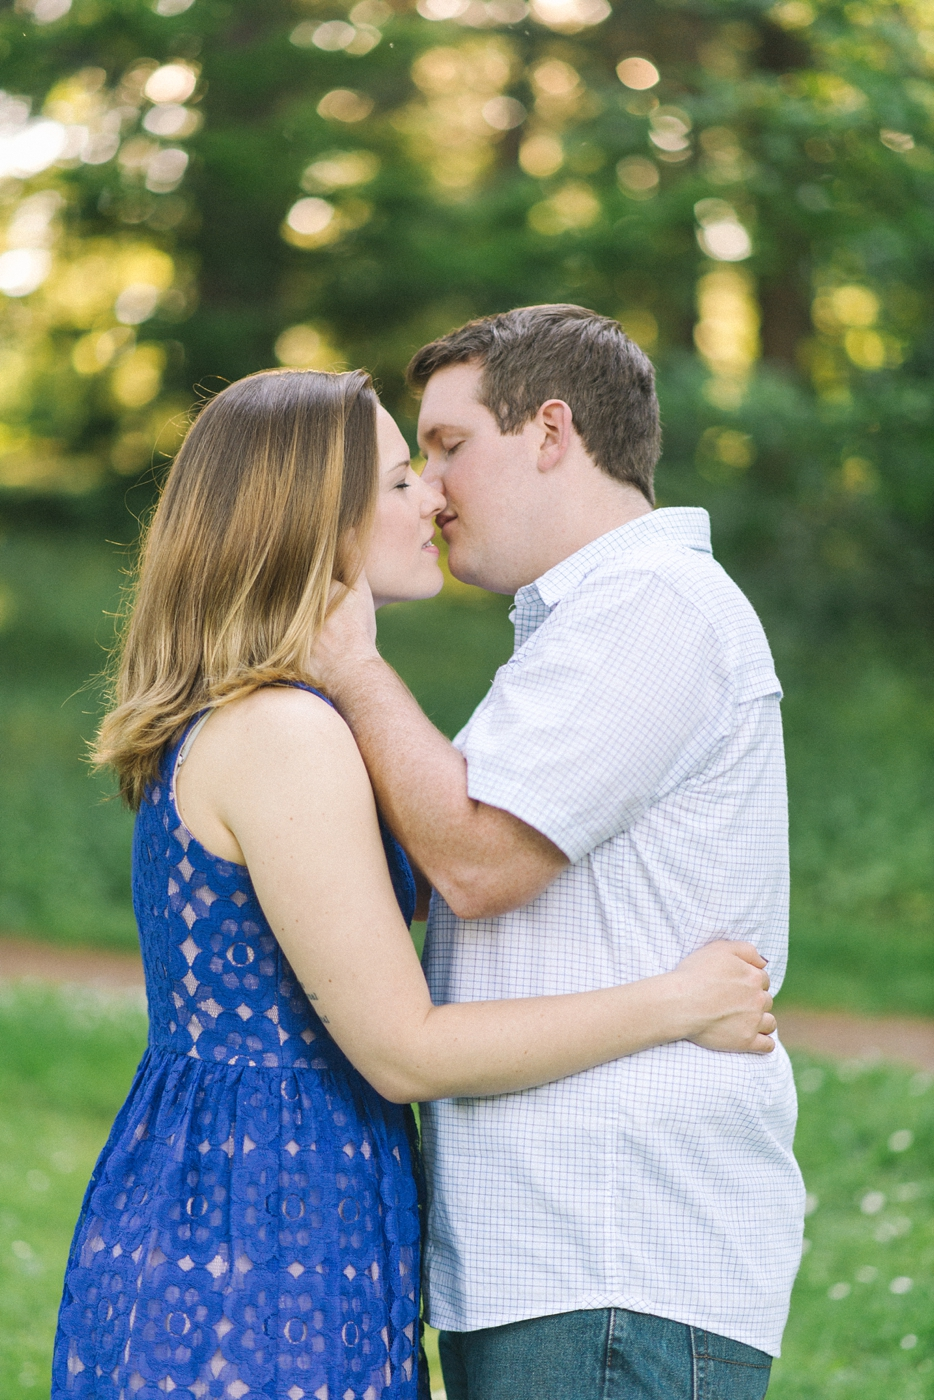 engagement-photography-portland-oregon-hoyt-arboretum-washington-park-romantic-kiss-couples-portraits-nature-natural-light-forest-field-shelley-marie-photo-7